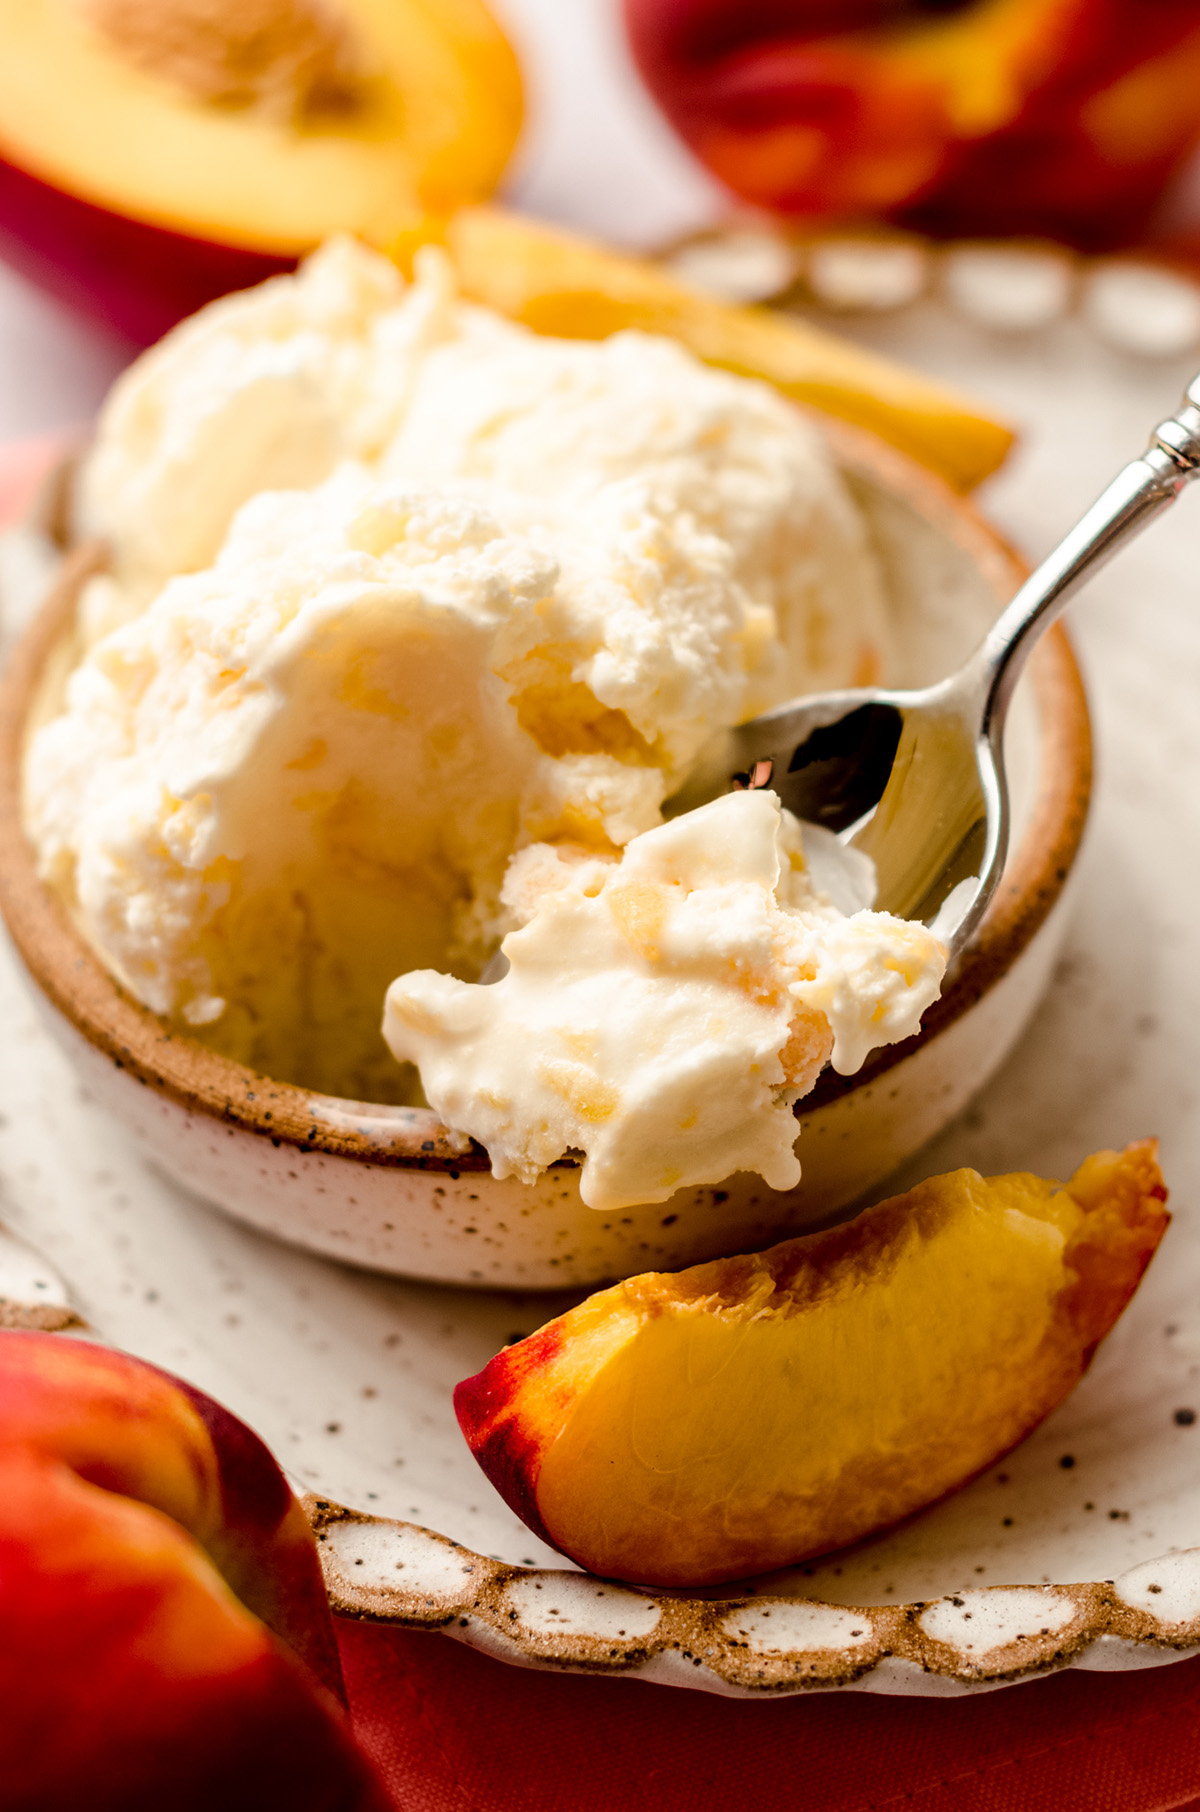 a bowl of homemade peach ice cream with a scoop a spoon